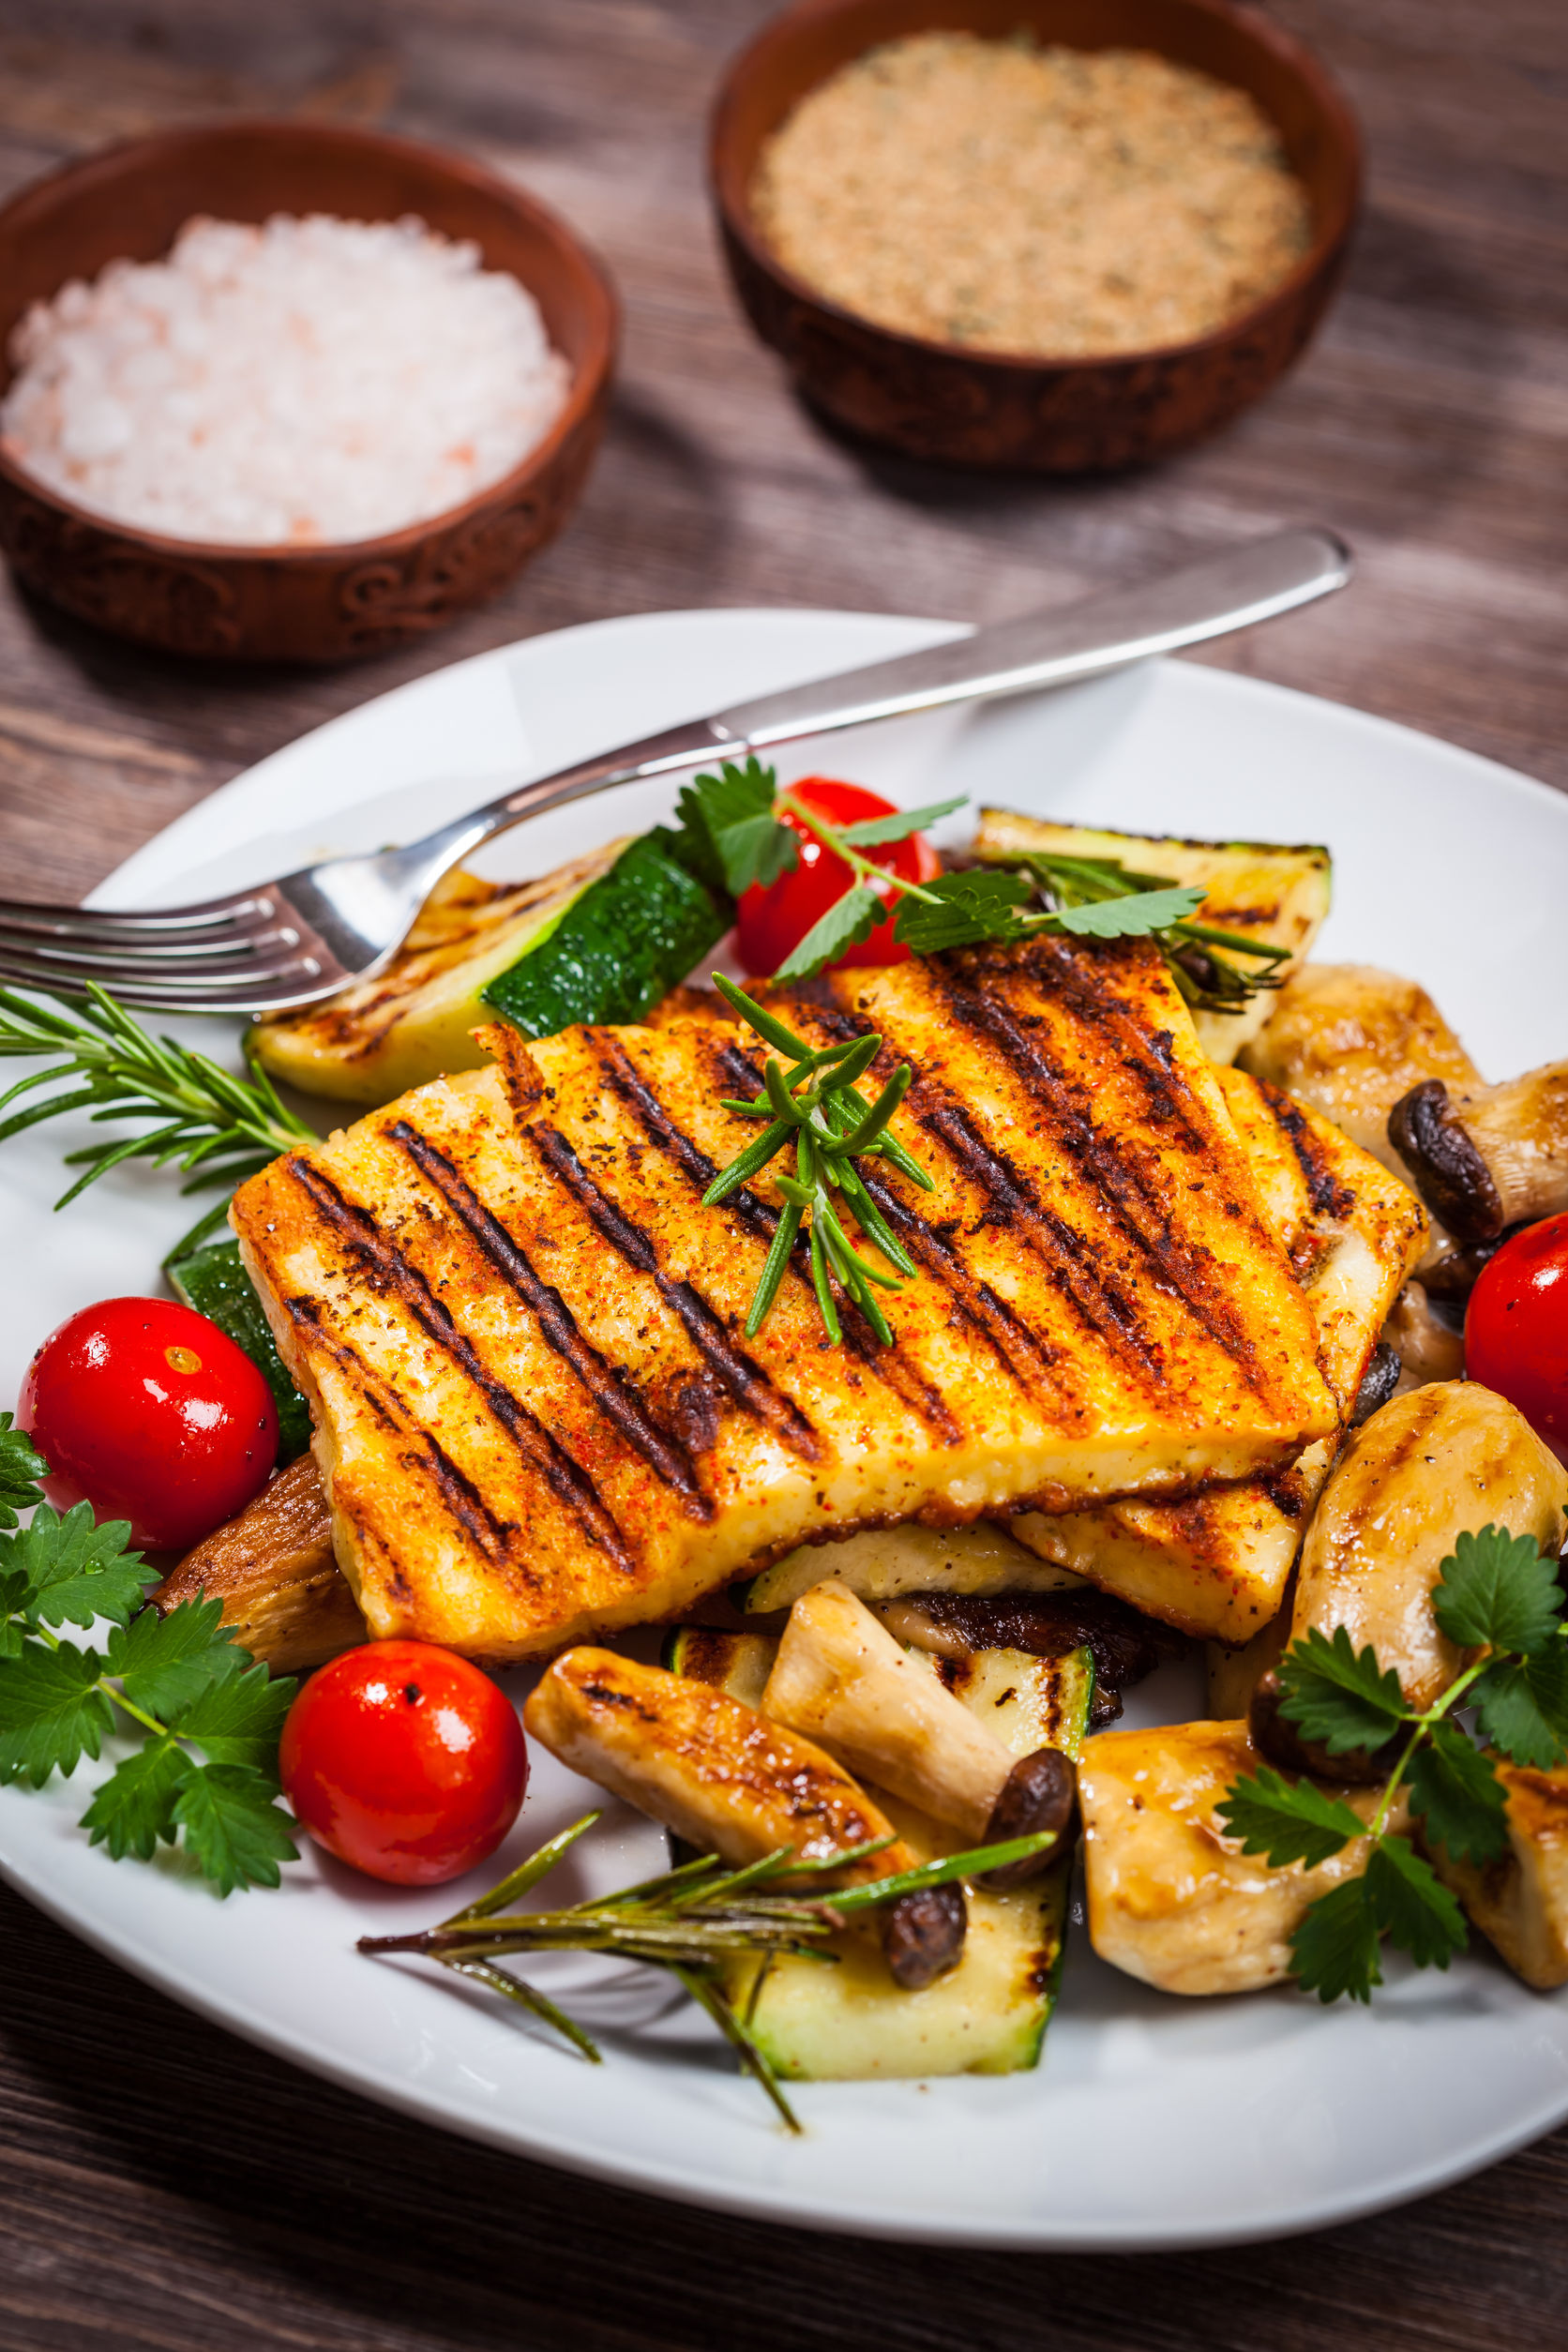 Grilled halloumi is a Cypriot speciality. Photo / 123RF